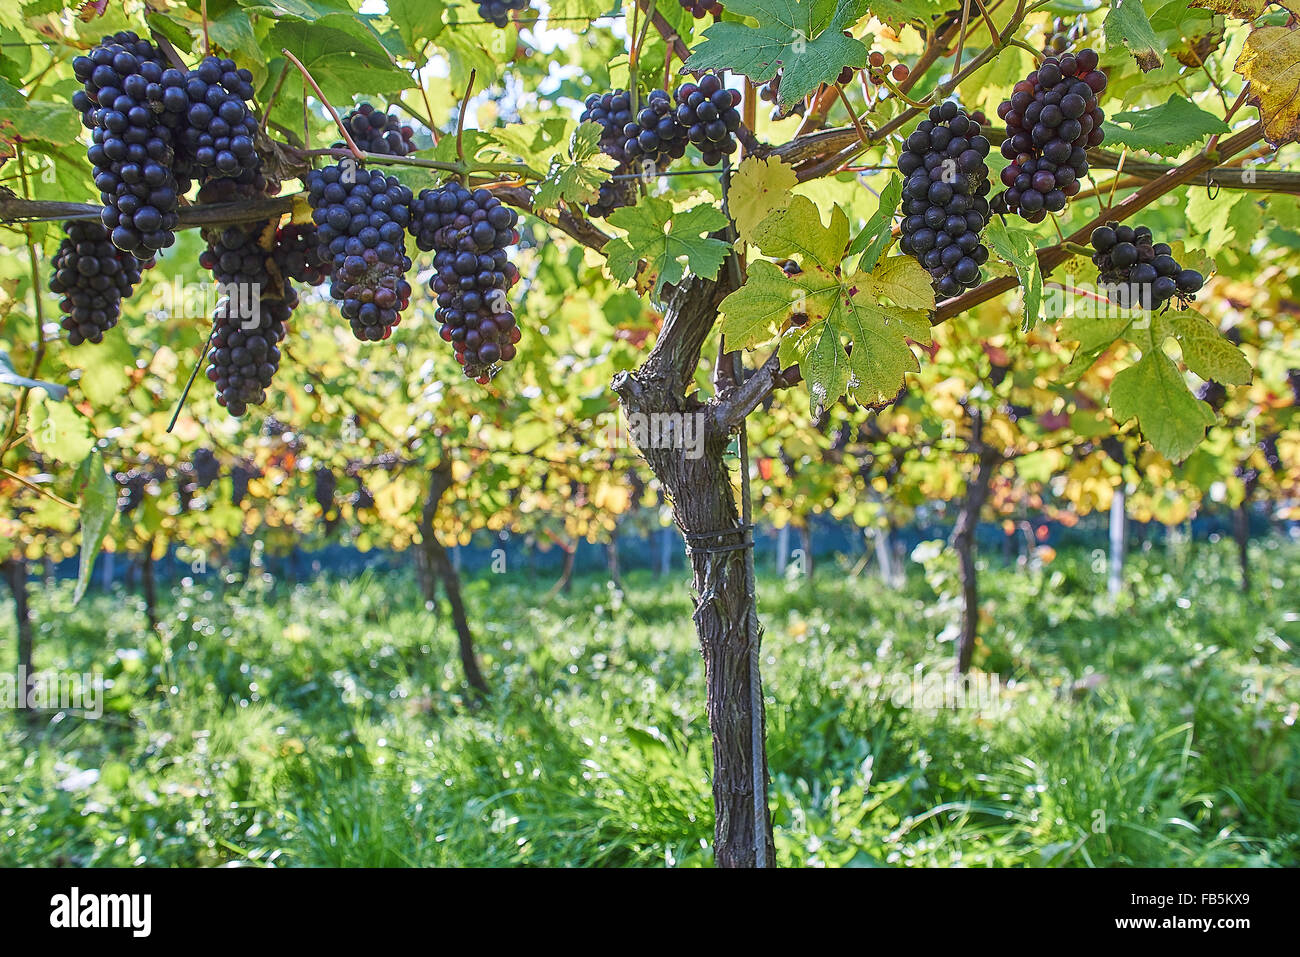 Grape Vines With Ripe Black Grapes At Wiston Vineyard Sussex